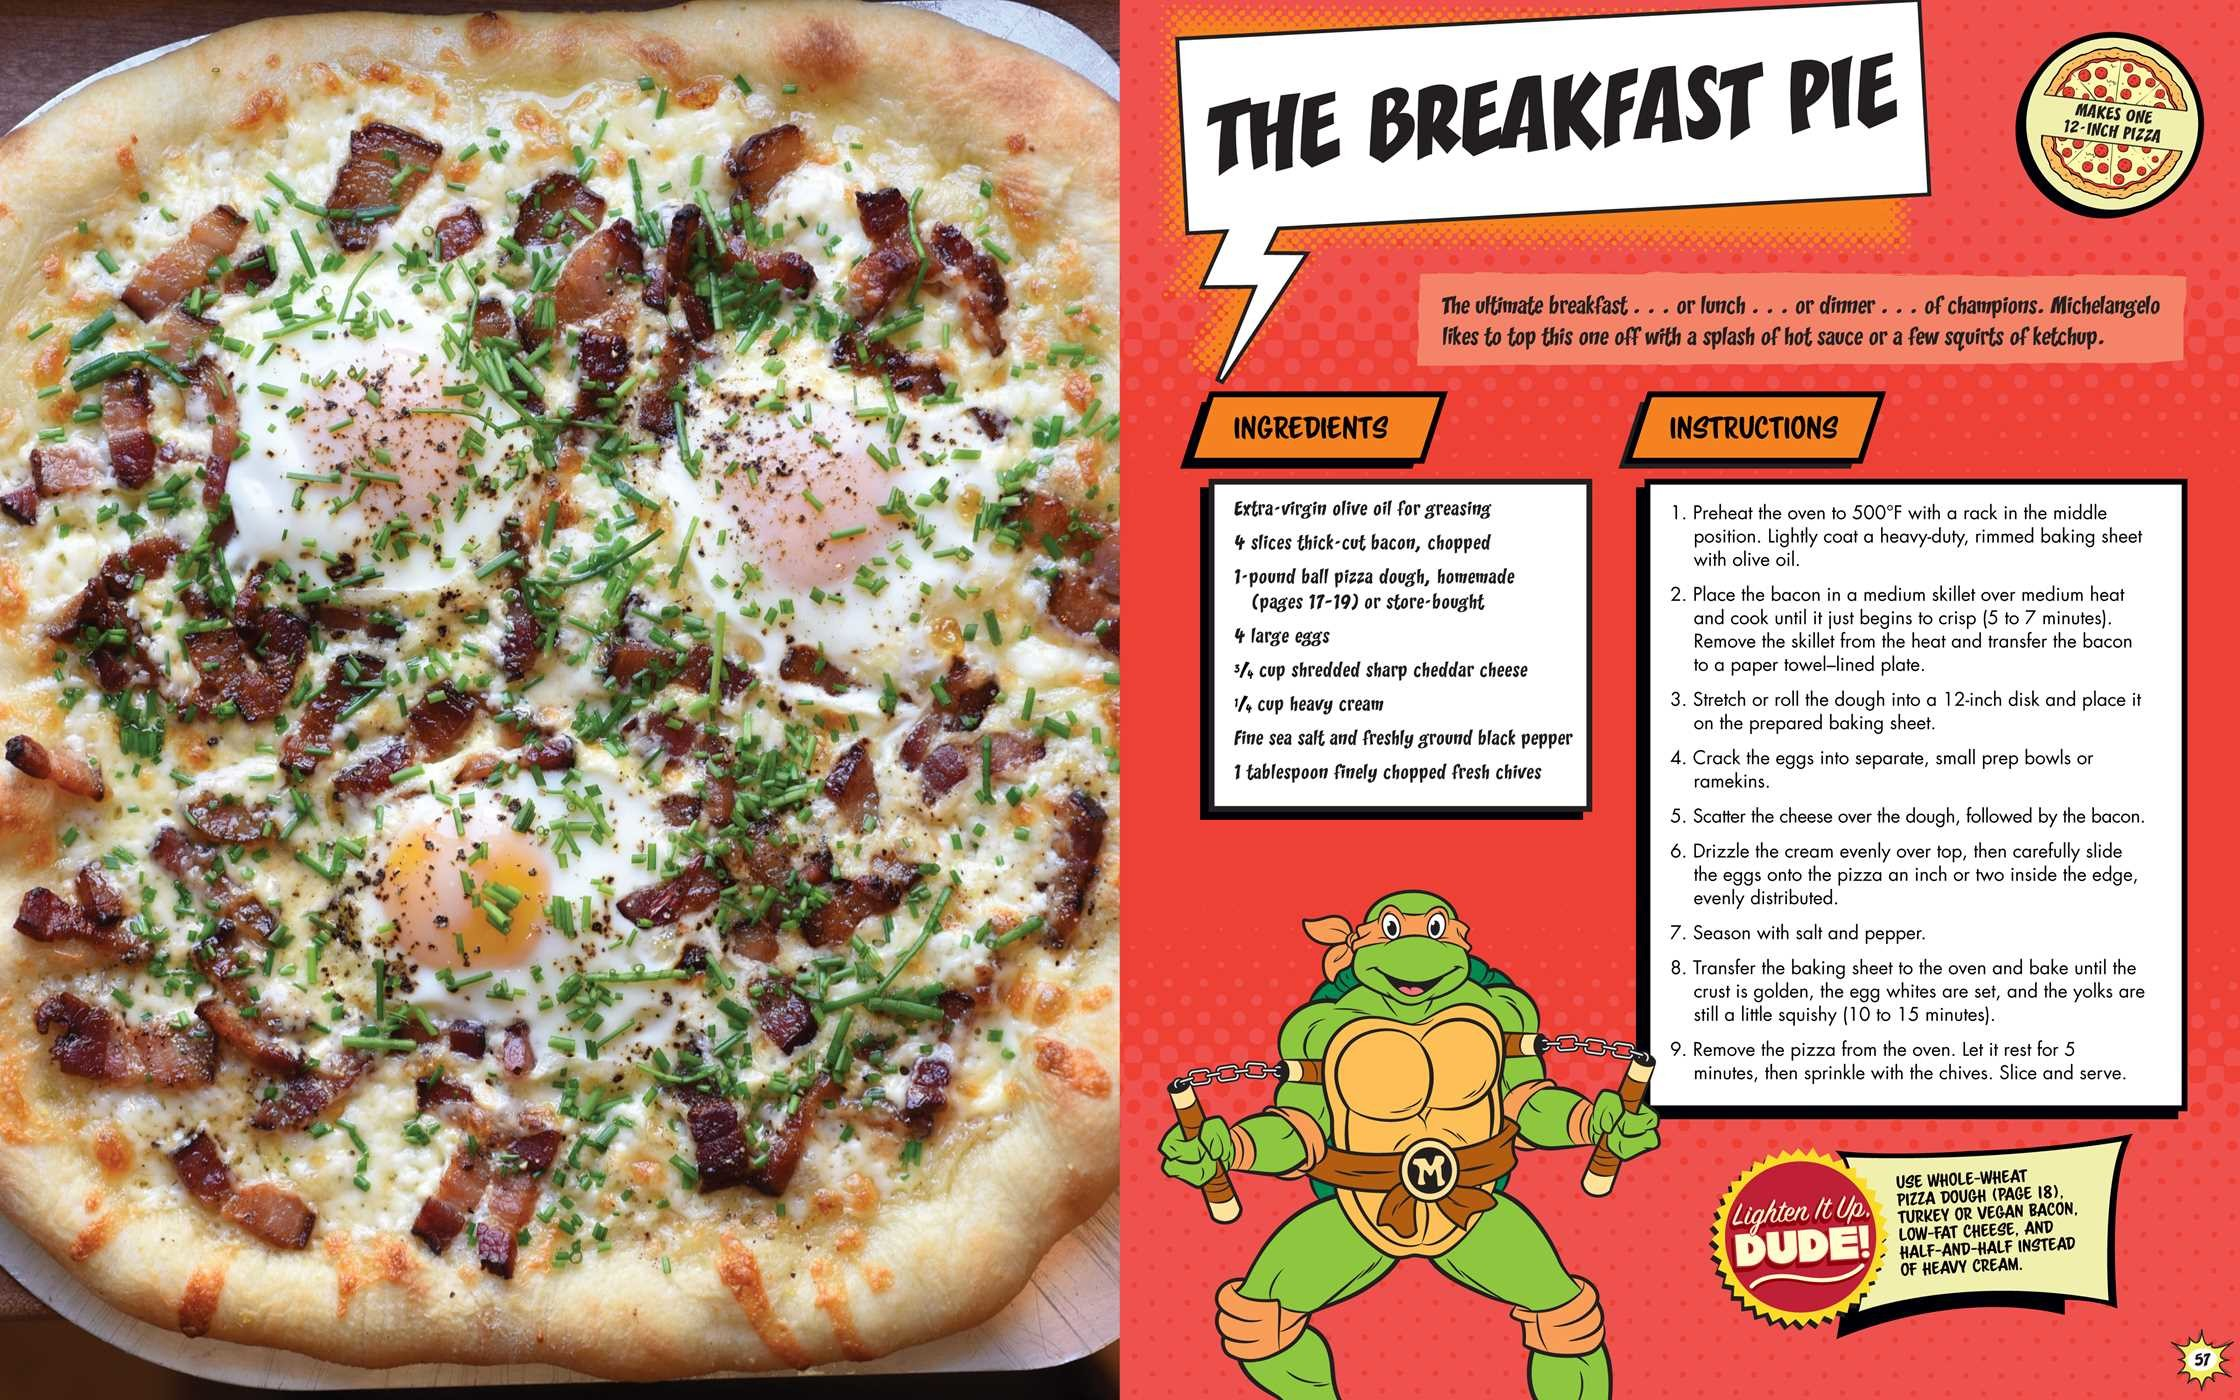 The teenage mutant ninja turtles pizza cookbook 9781608878314.in04